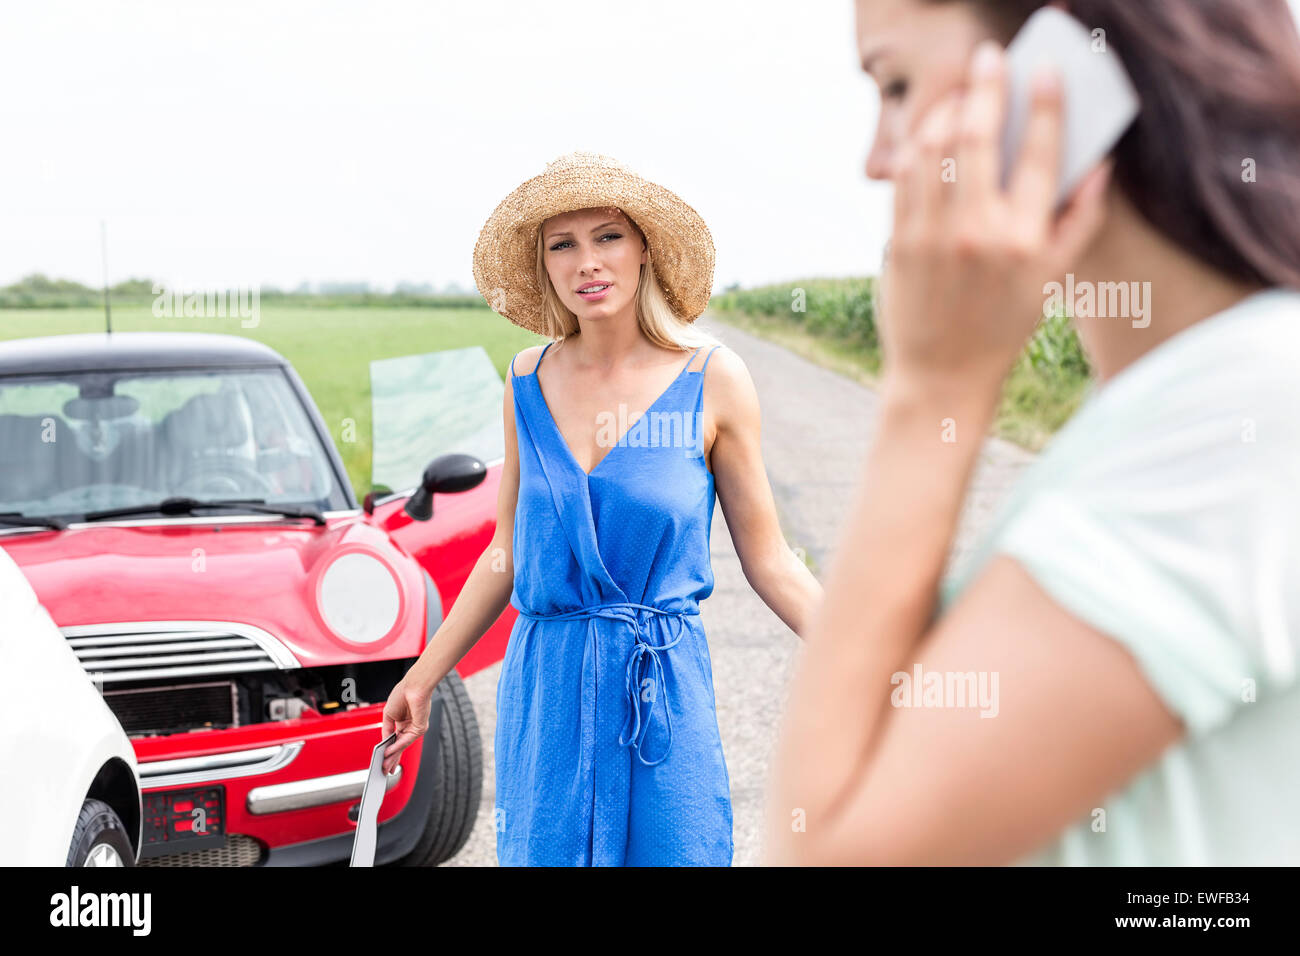 Angry woman looking at female using cell phone by damaged cars on road Stock Photo